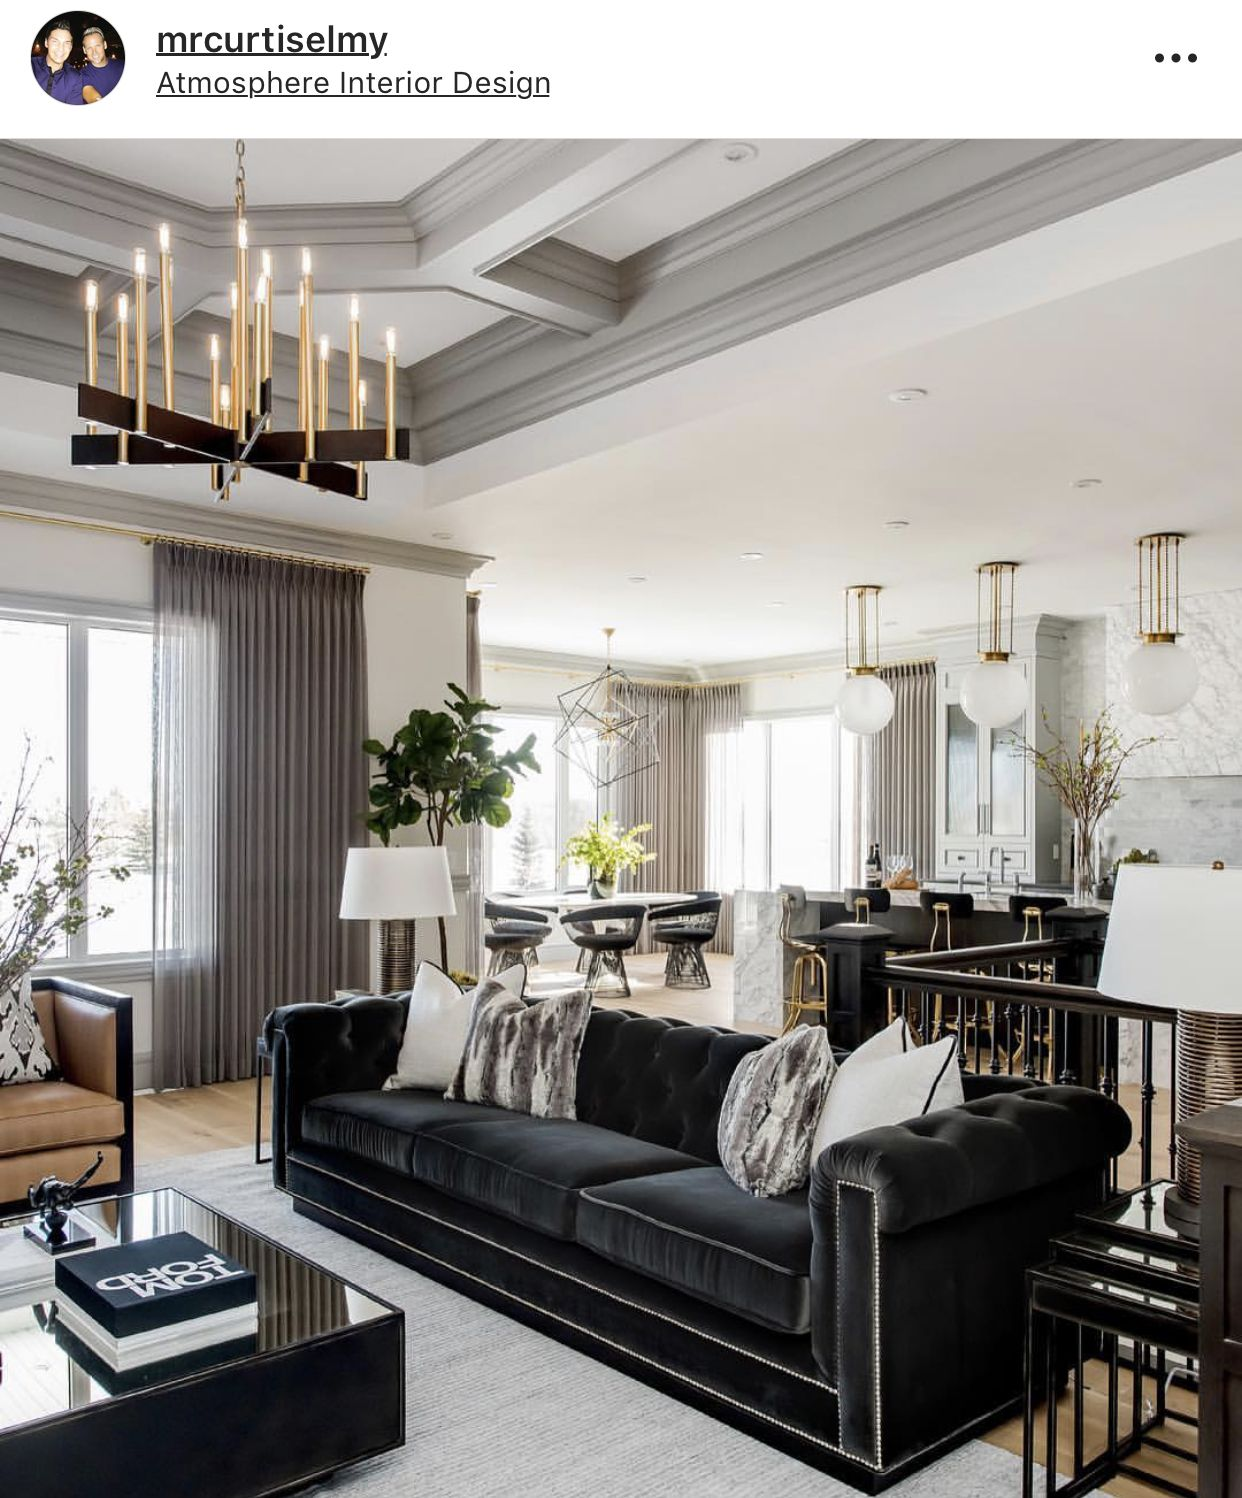 Big living rooms beautiful family modern french decor white also pin by alex gonzalez on ceiling ideas pinterest room rh